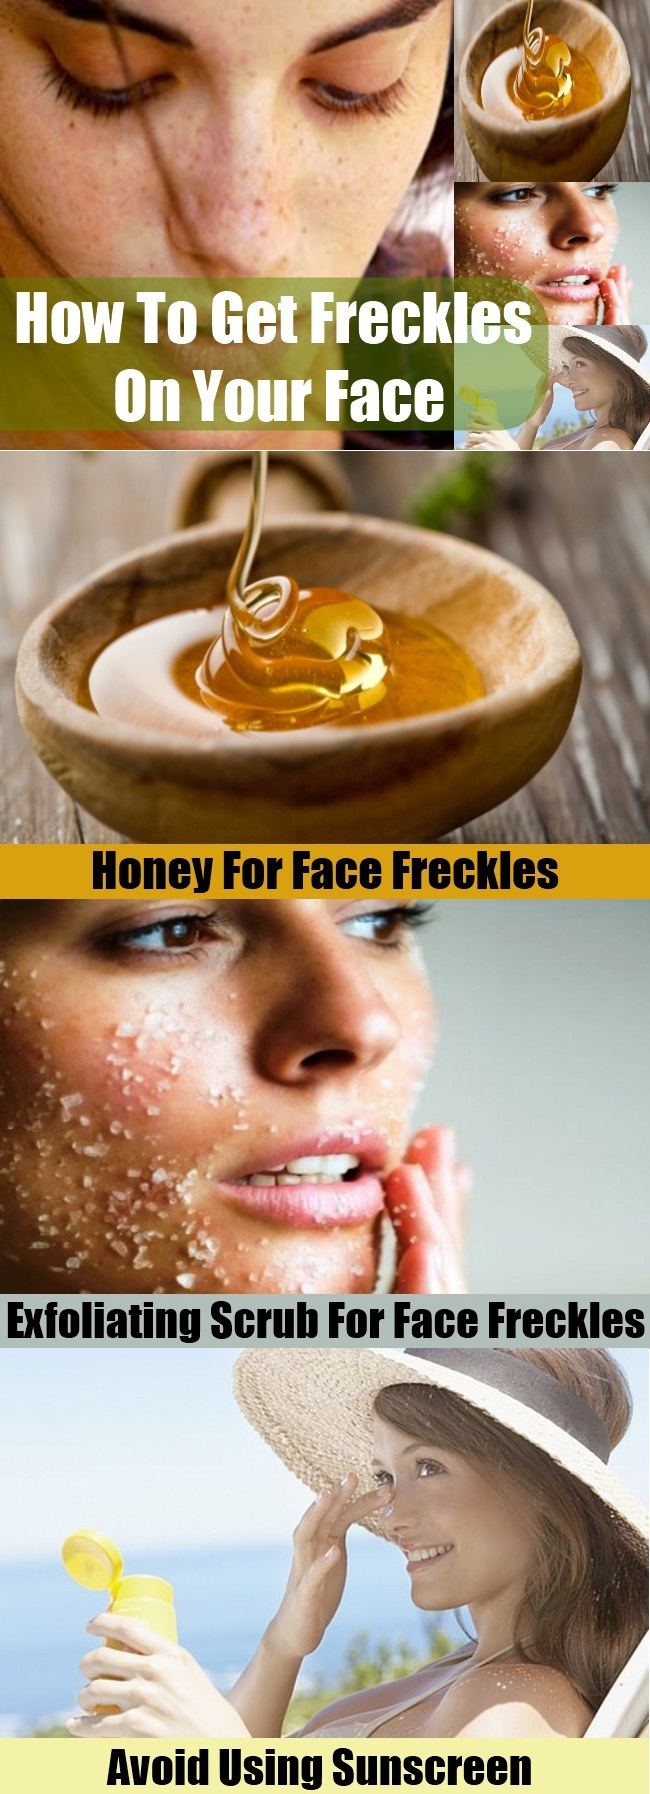 Get Freckles On Your Face